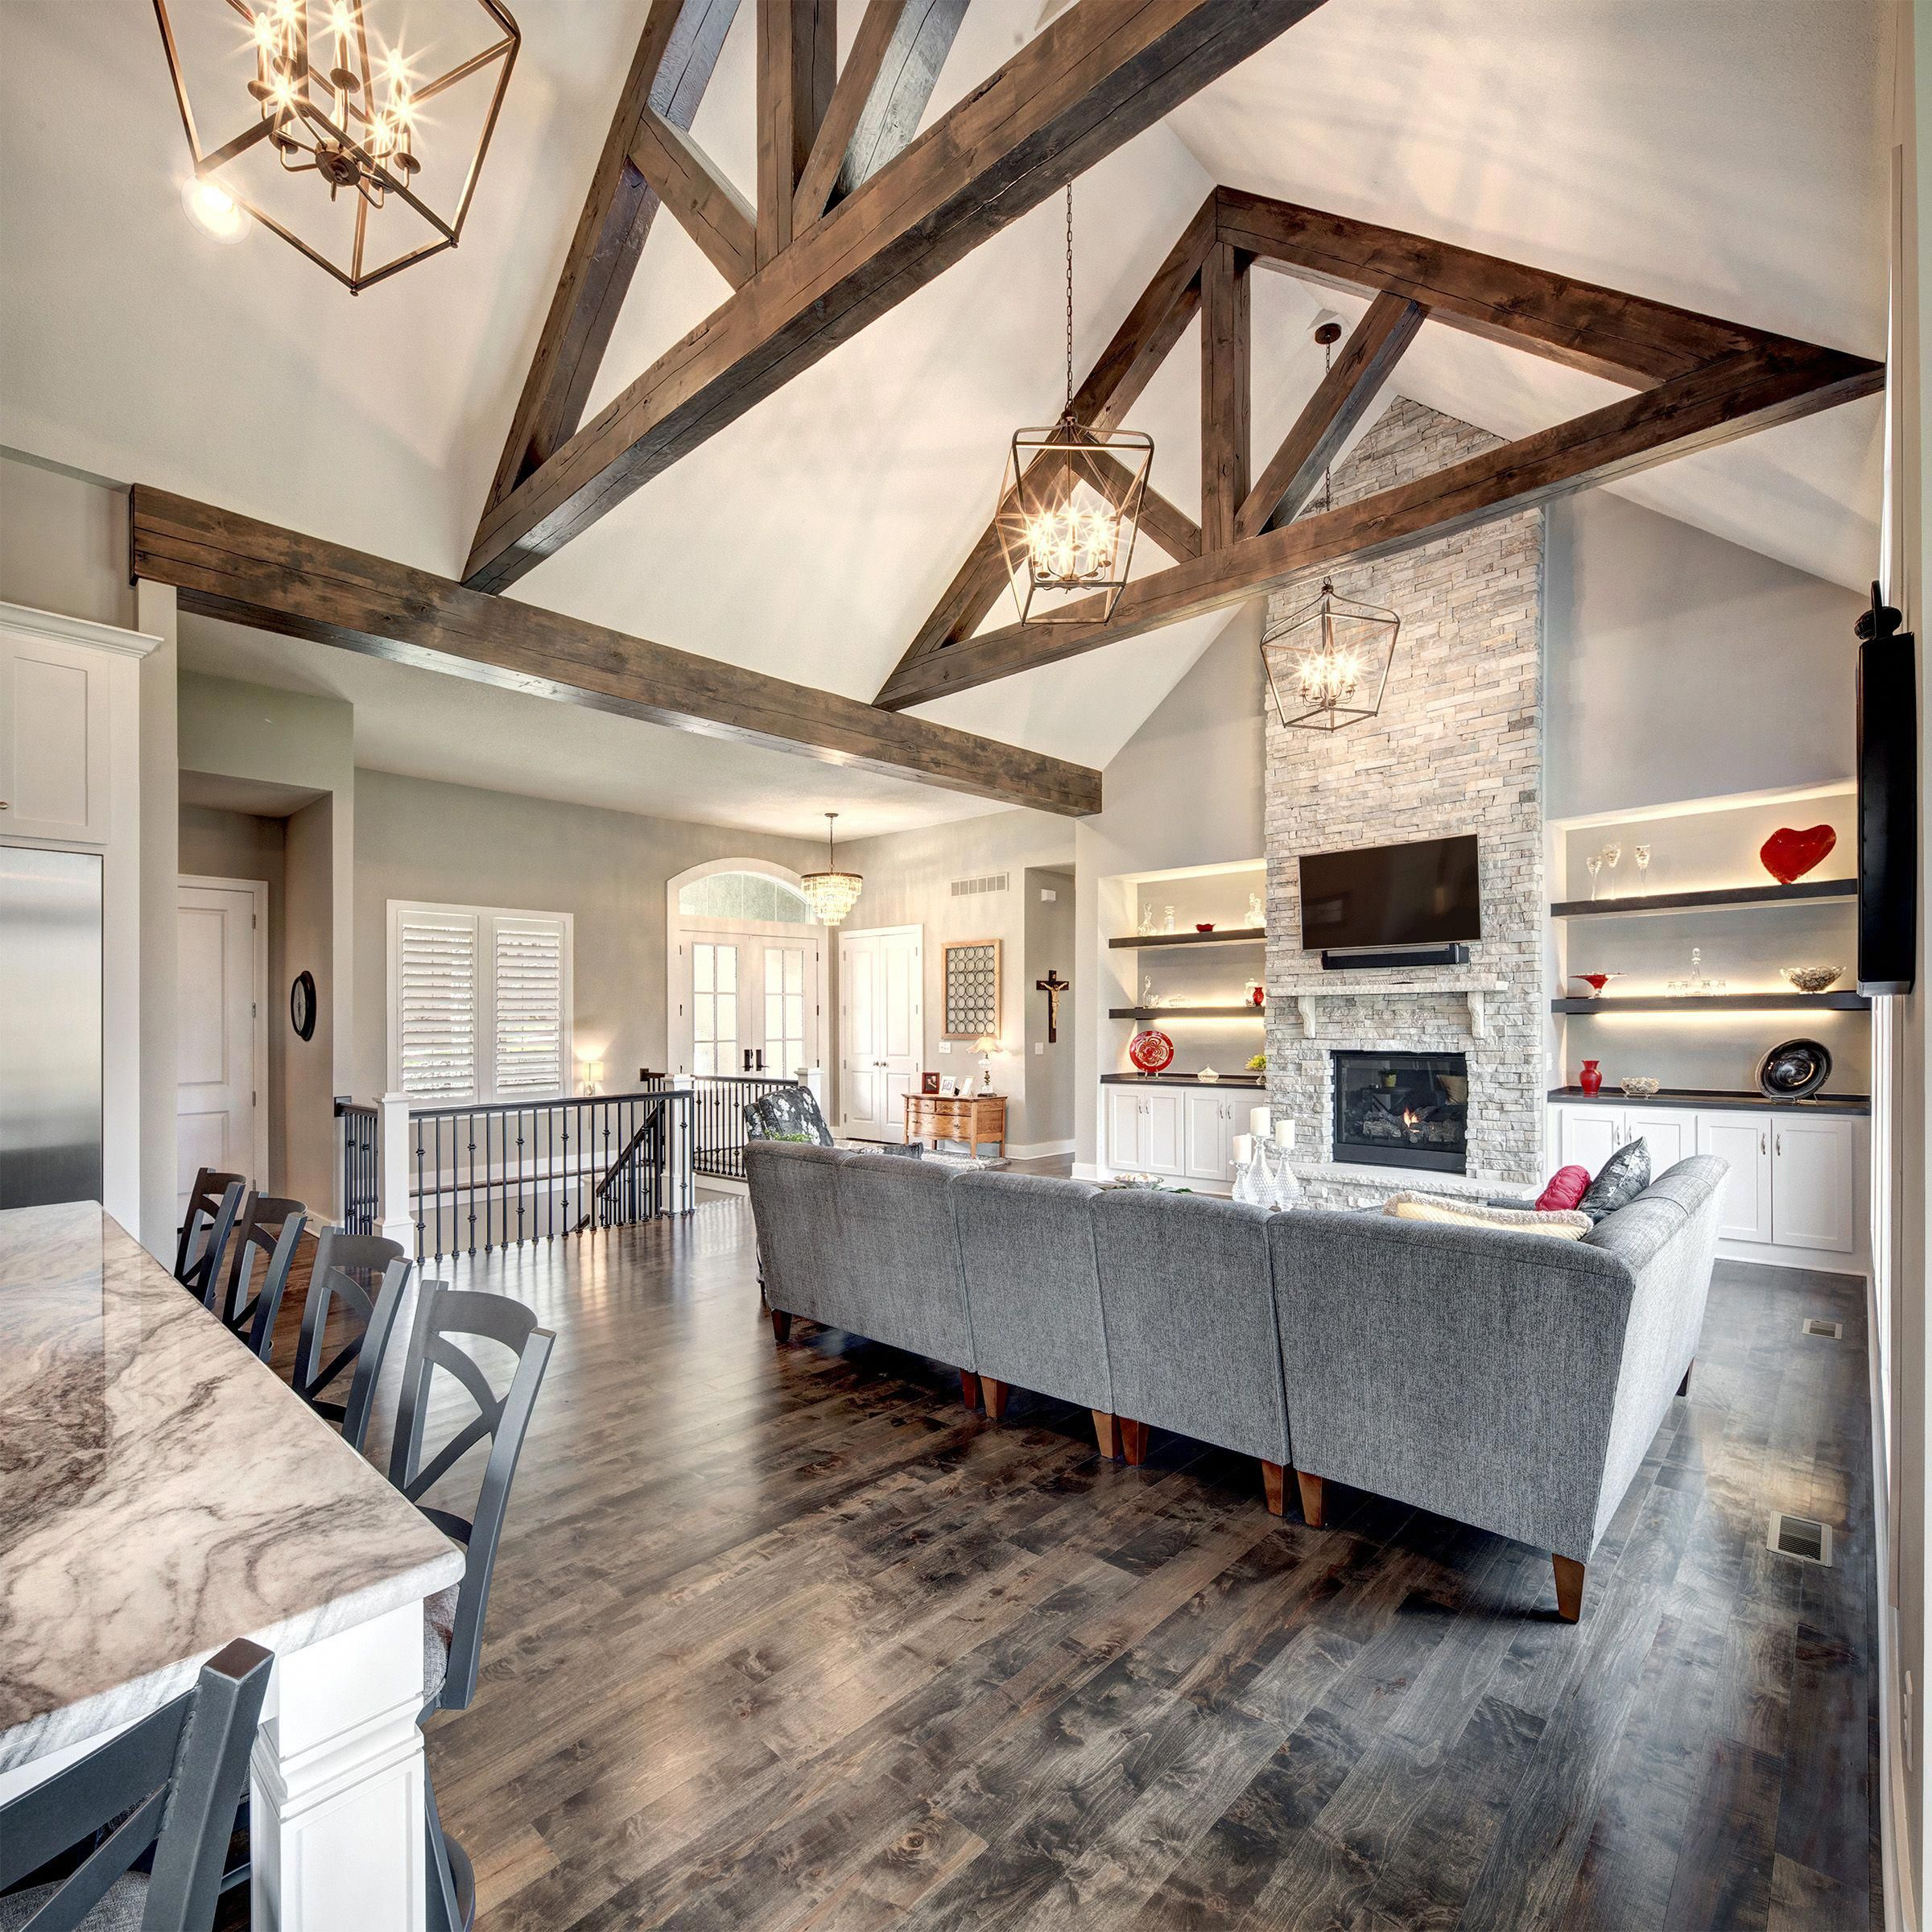 Hearth Room With Wood Beams Remodelinglivingroomideas Farm House Living Room Beams Living Room Home Decorating vaulted living rooms